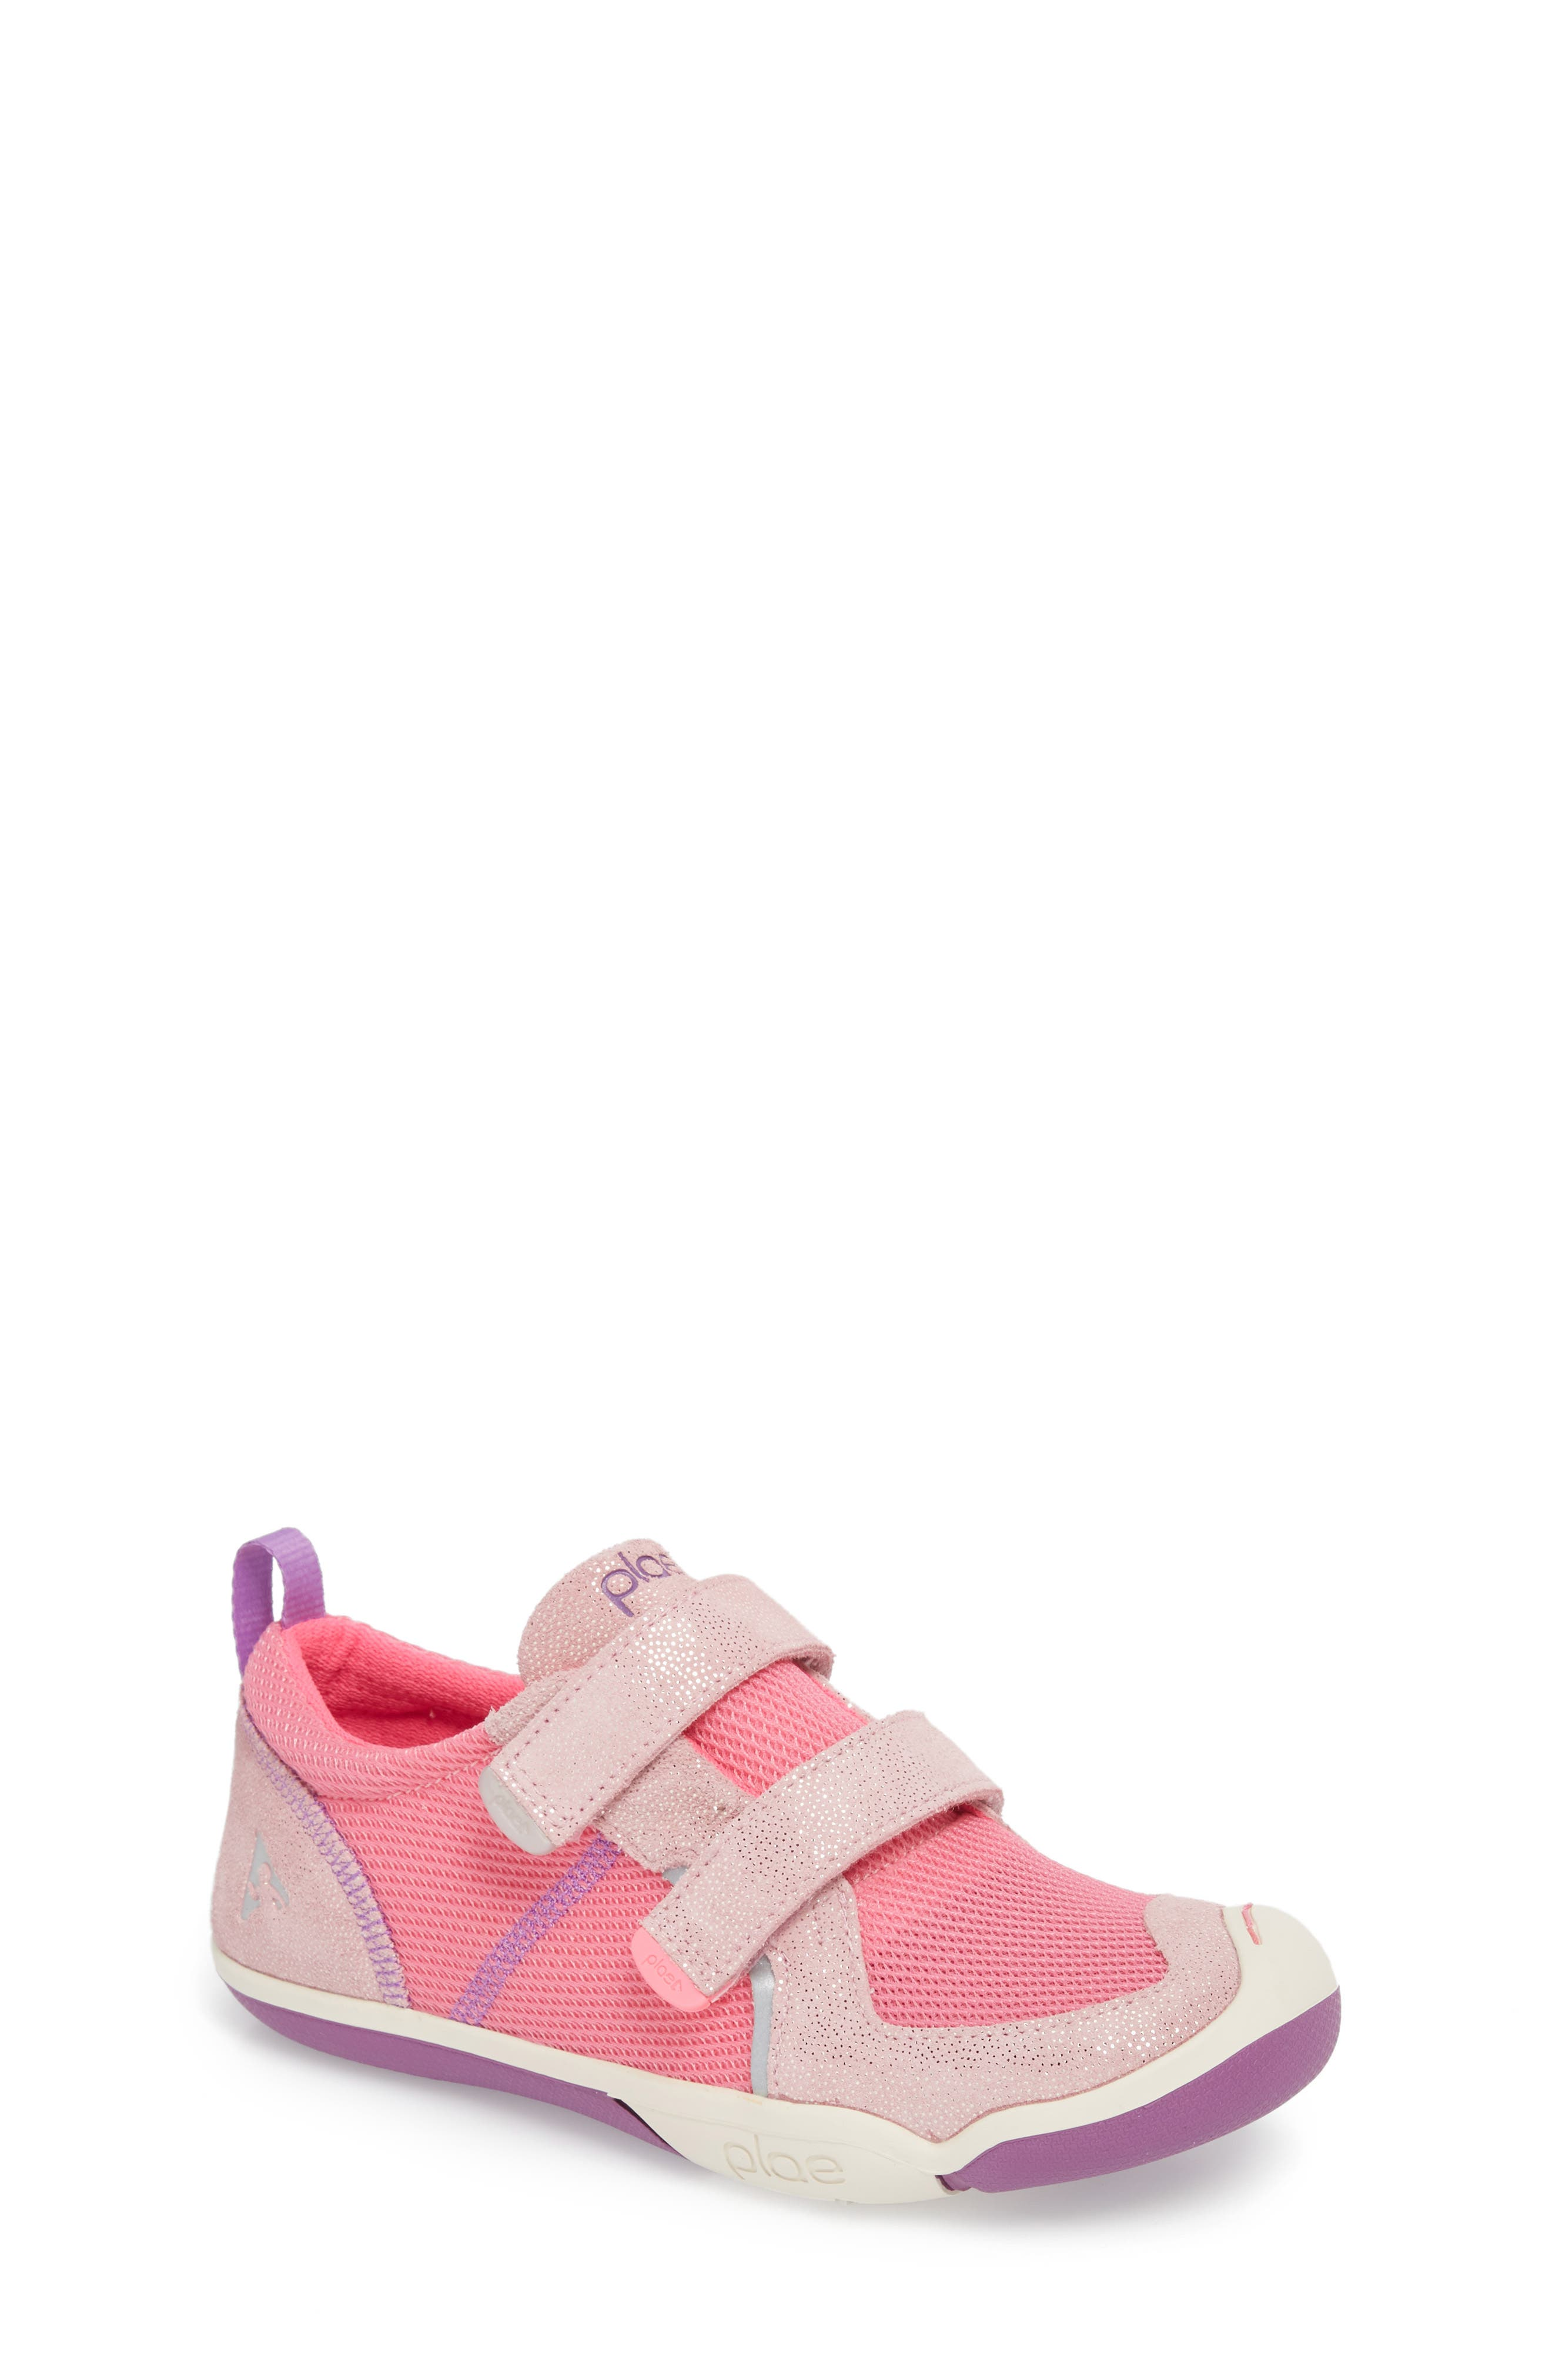 PLAE 'Ty' Customizable Sneaker, Main, color, PINK/ PINK/ DEWBERRY